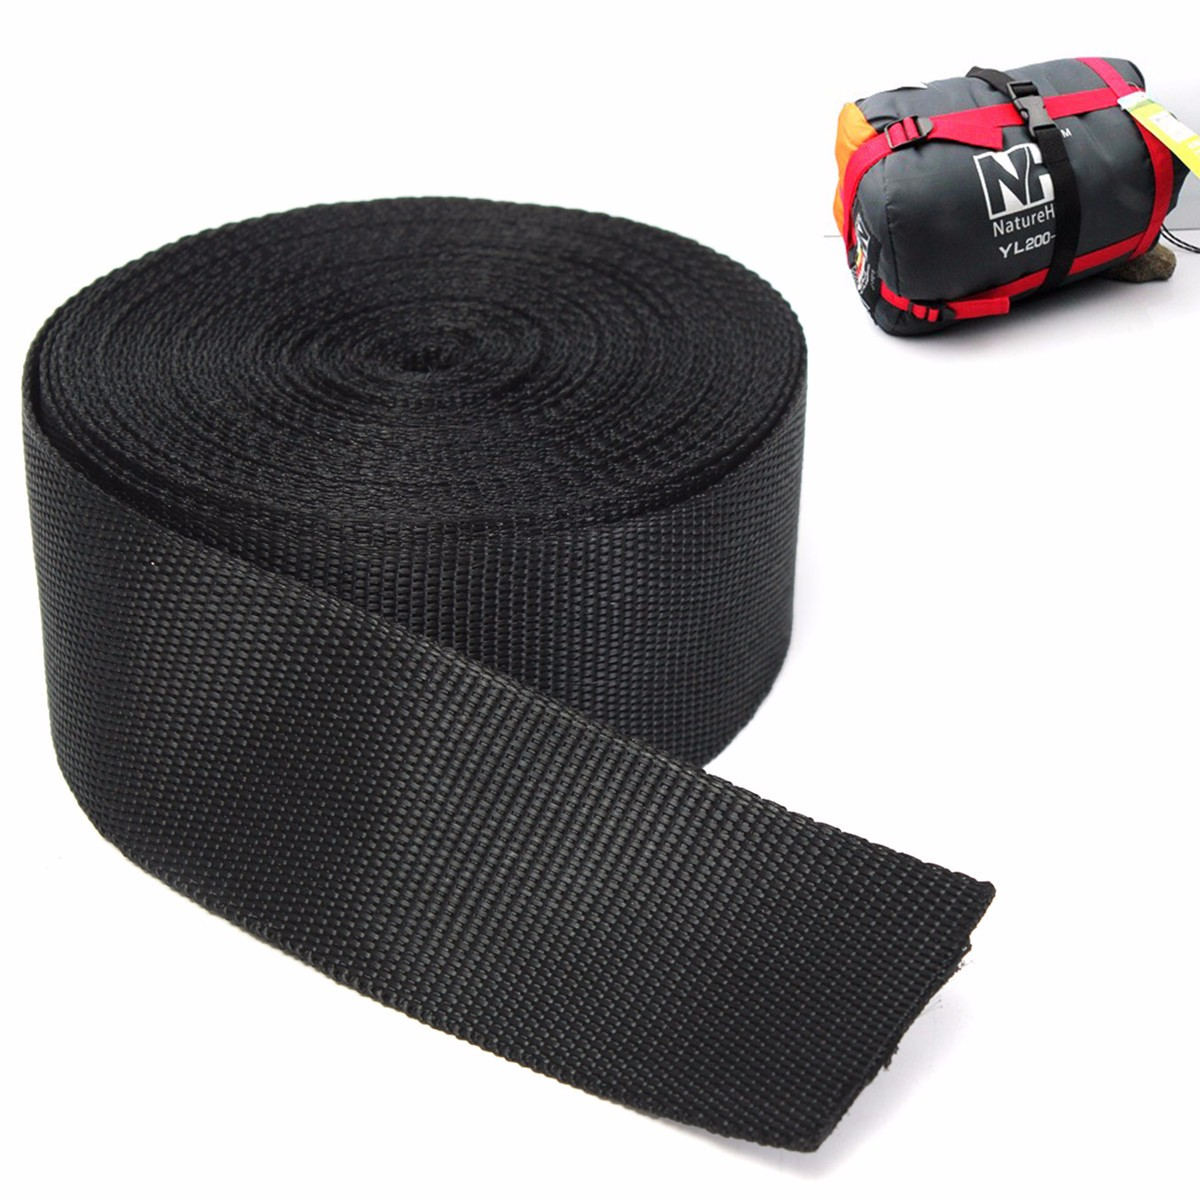 Buy 2 Get One Free Learned Black 50mm 2 Inch Nylon Webbing X 10 Meters Outdoor Sports Sporting Goods